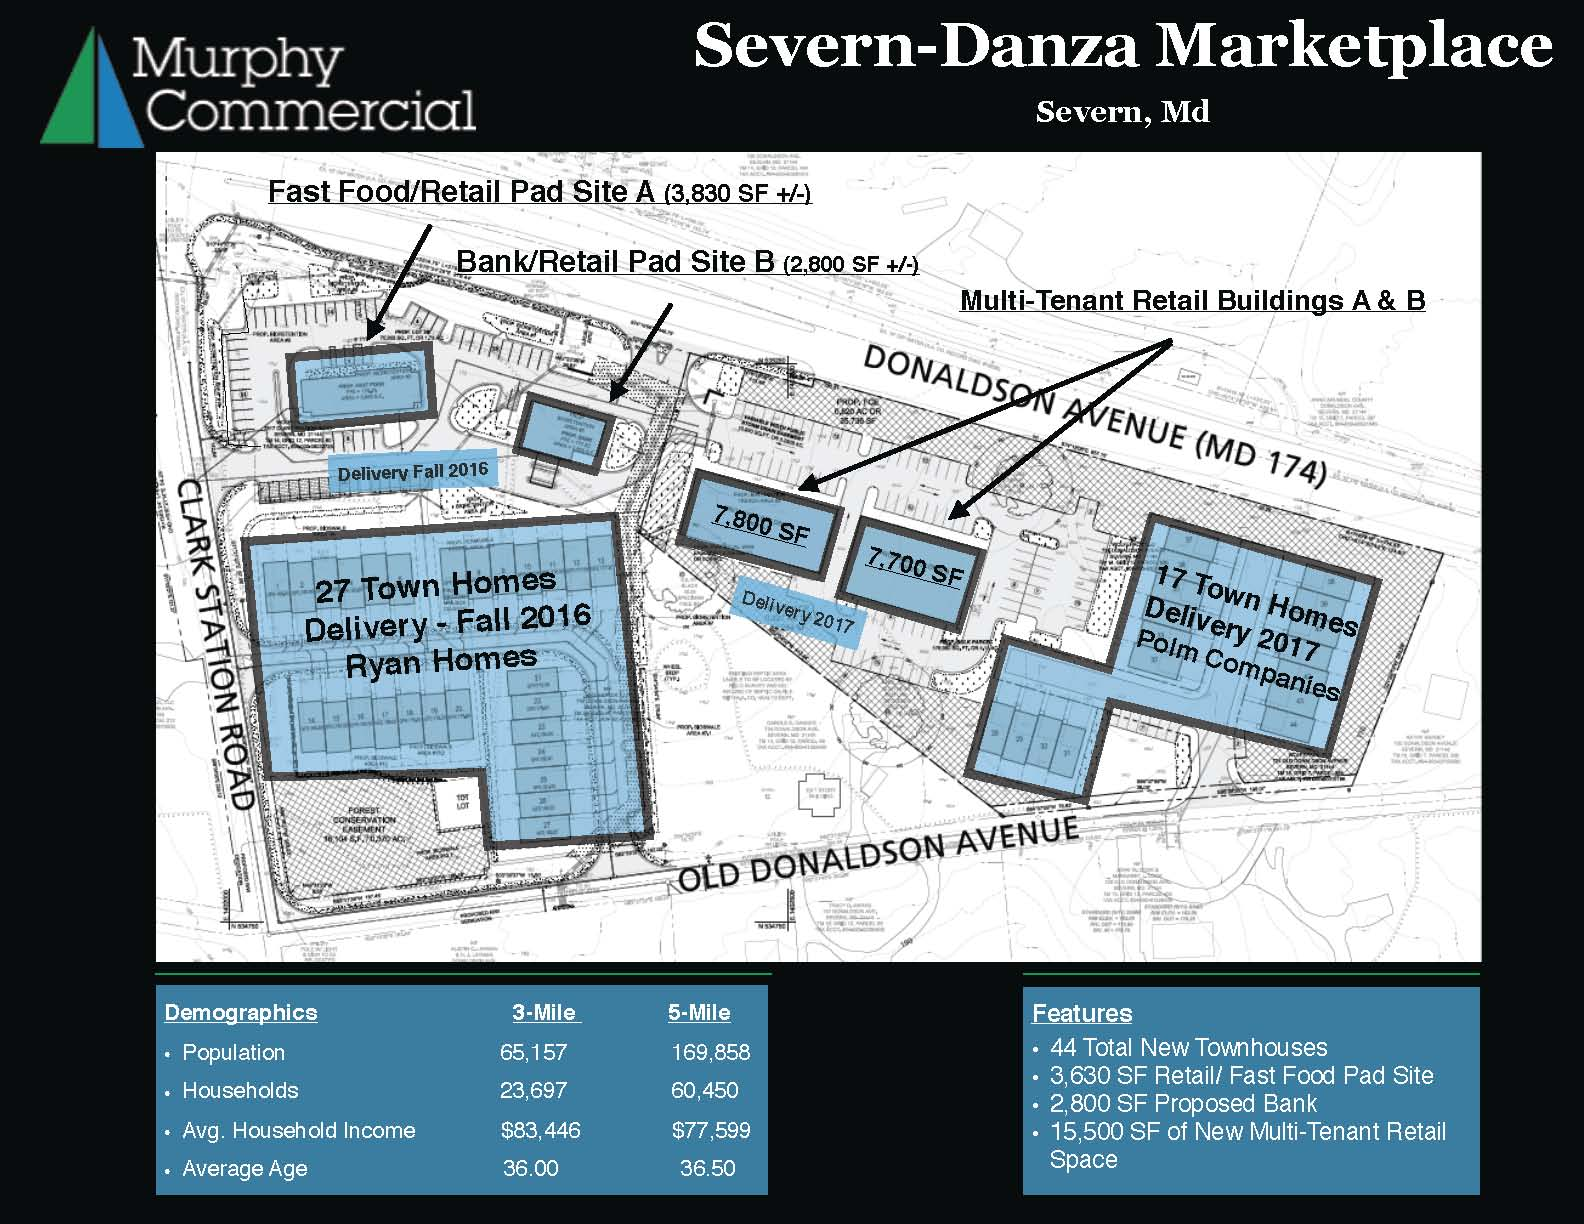 Severn-Danza Marketplace